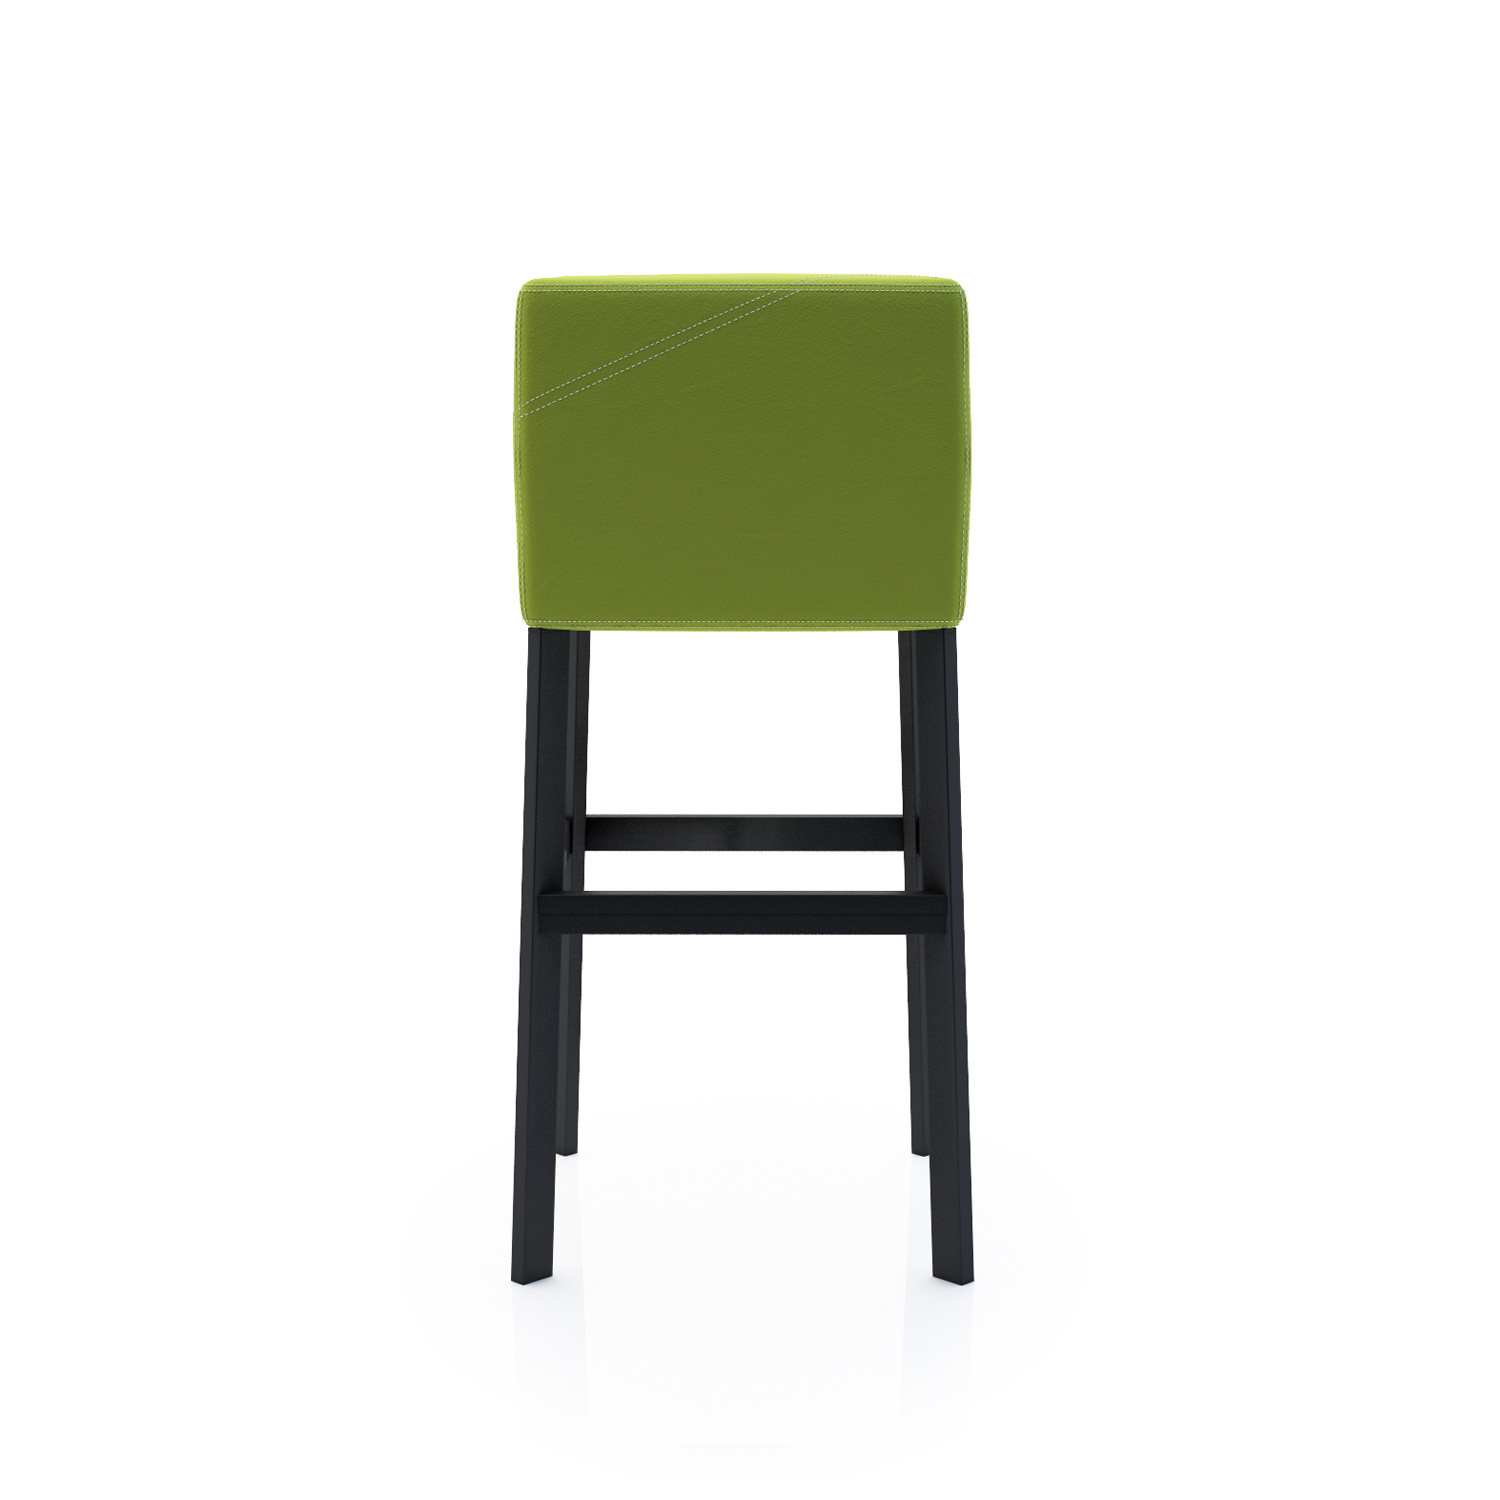 Cube 3.0 Bar Stools from Apres Furniture